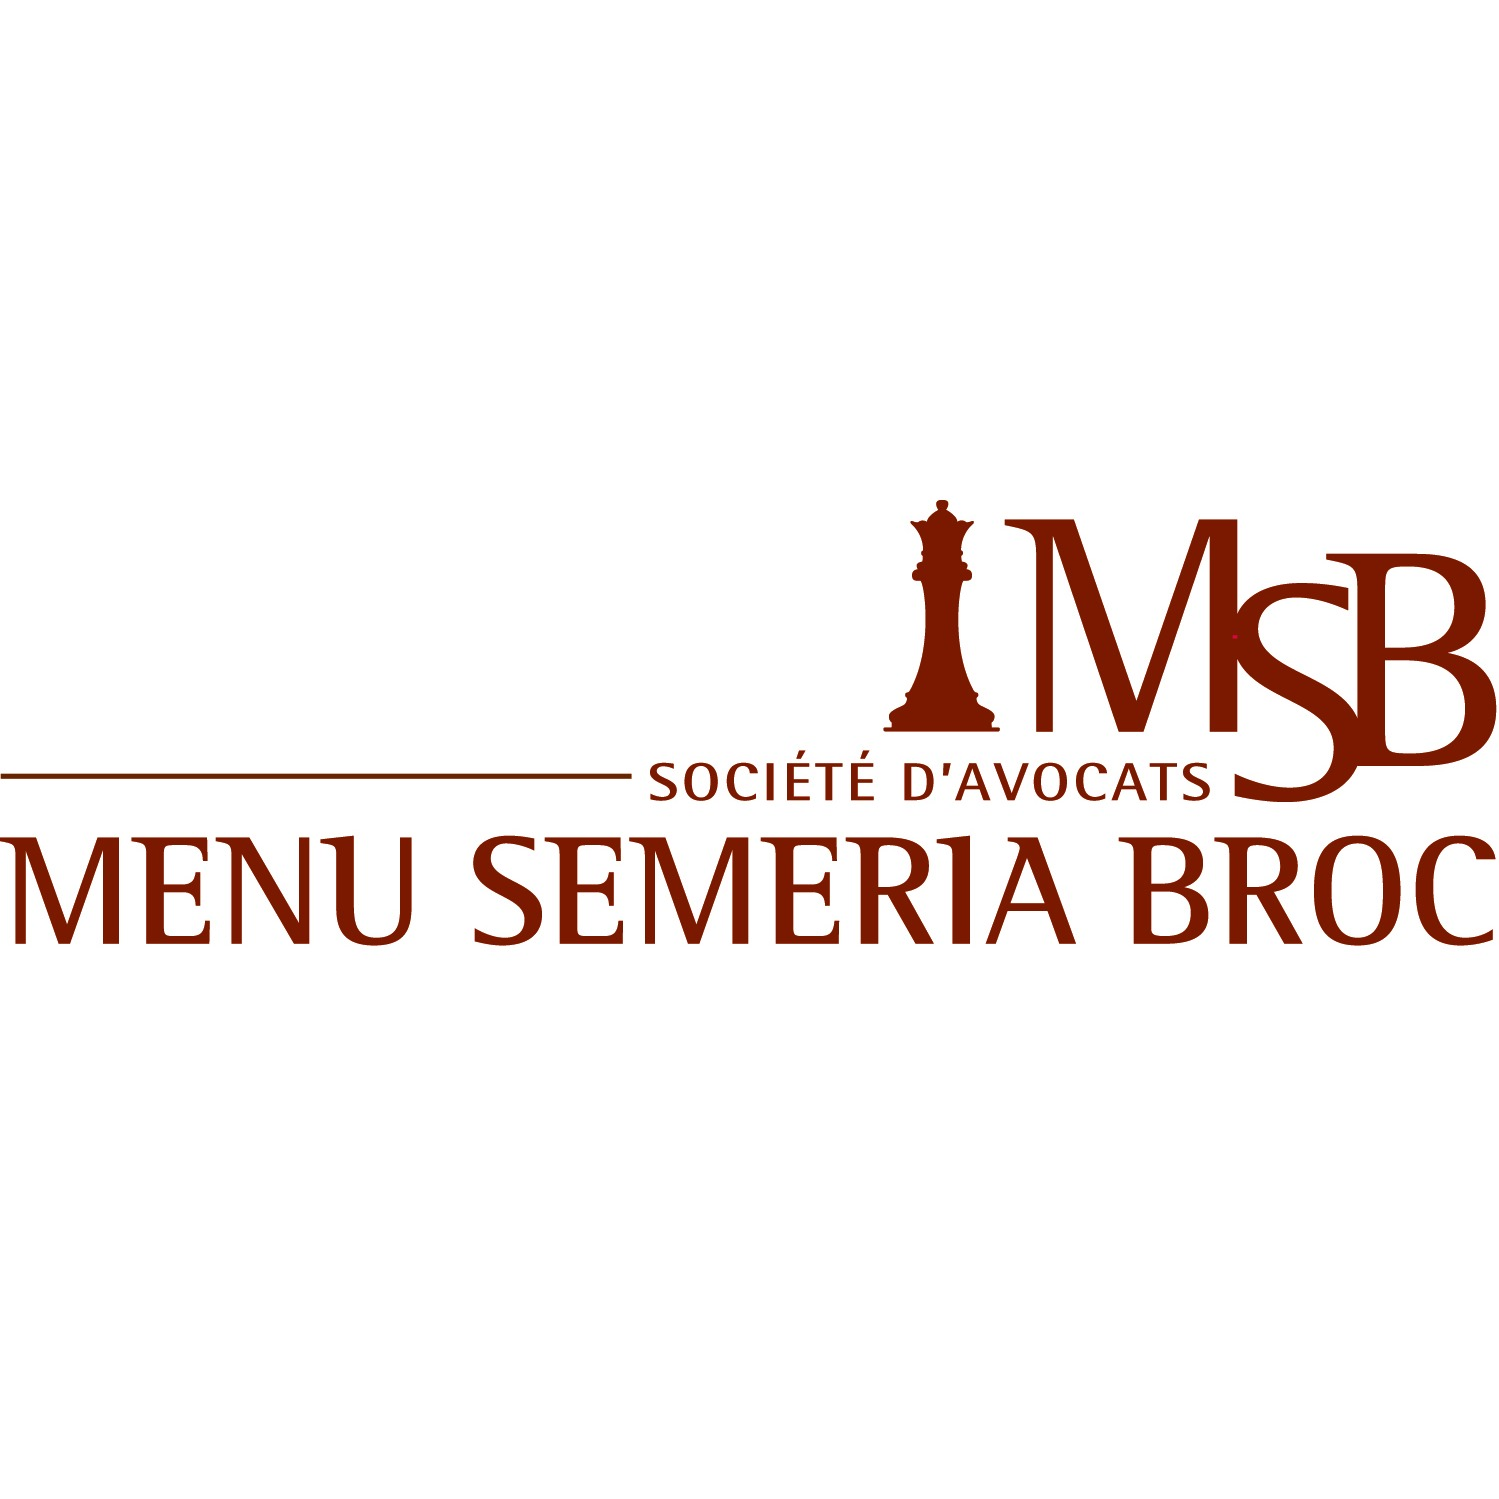 the Menu Semeria Broc logo.